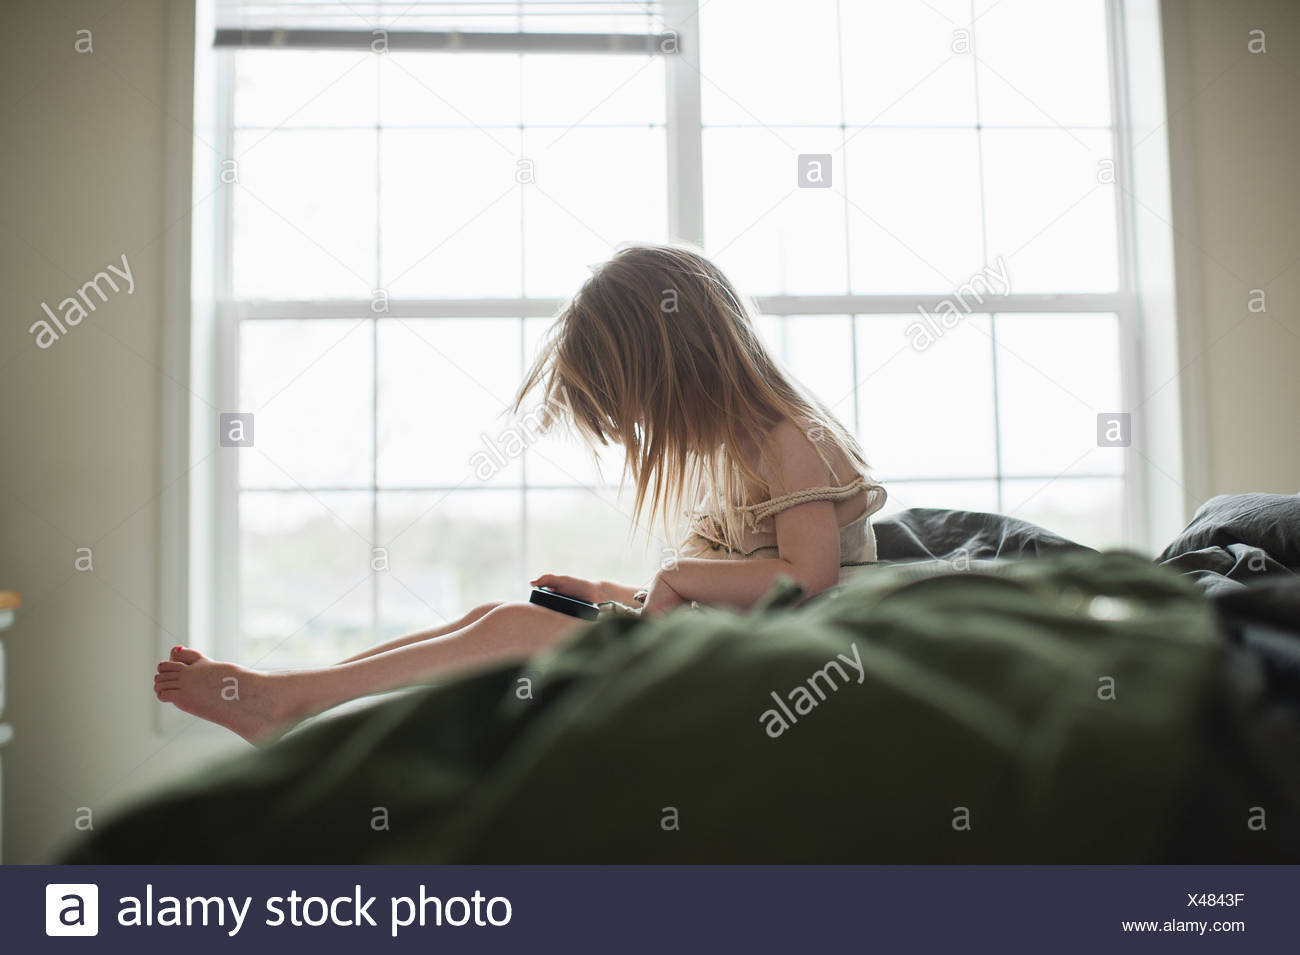 Girl sitting on bed using smartphone Photo Stock